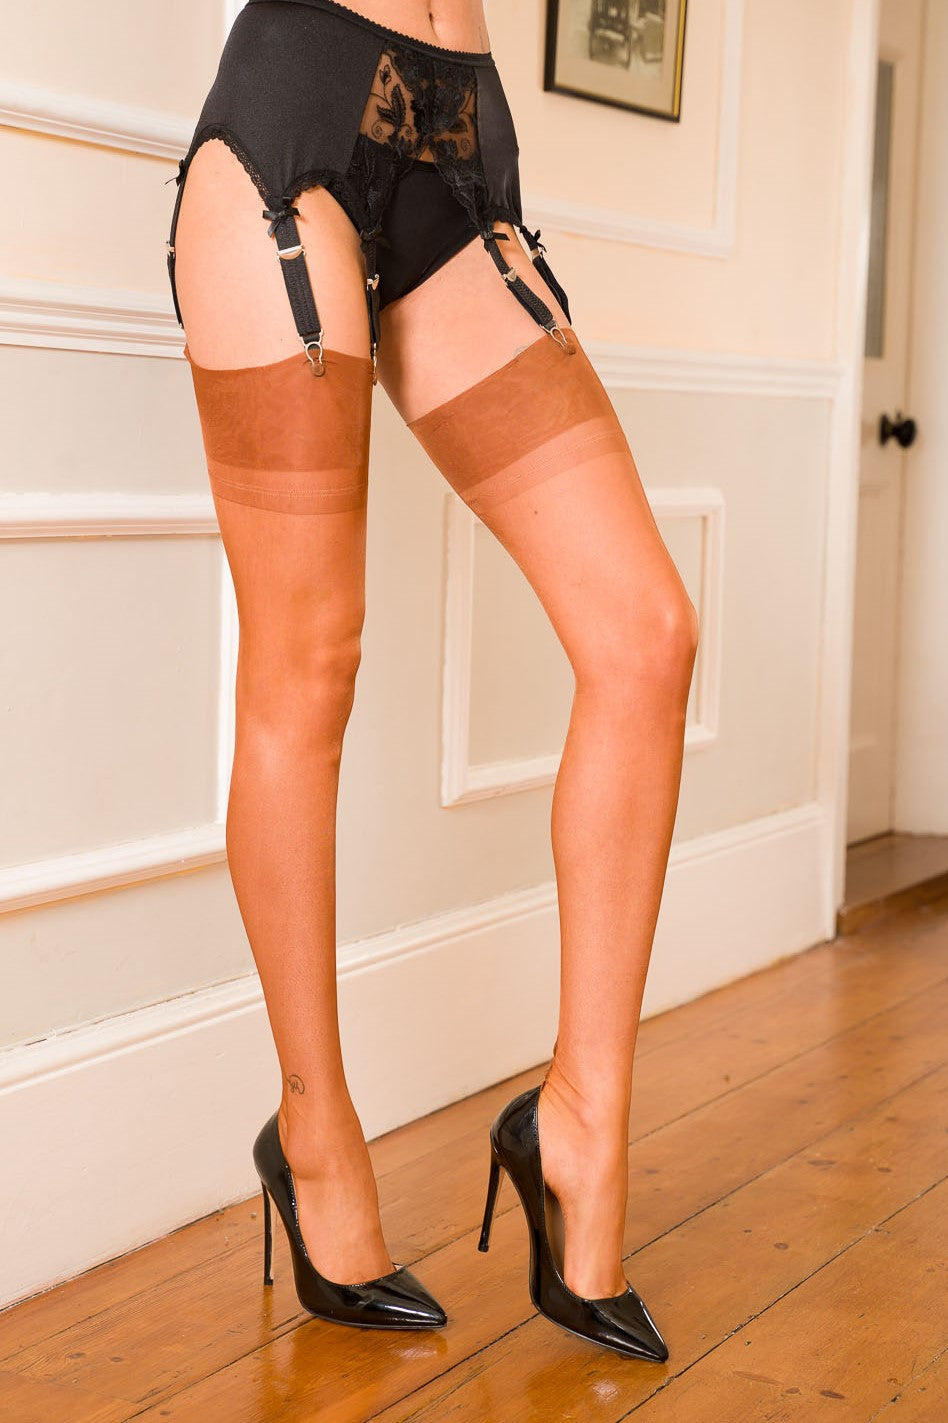 Harmony Point heel fully fashioned nylon stockings in spice